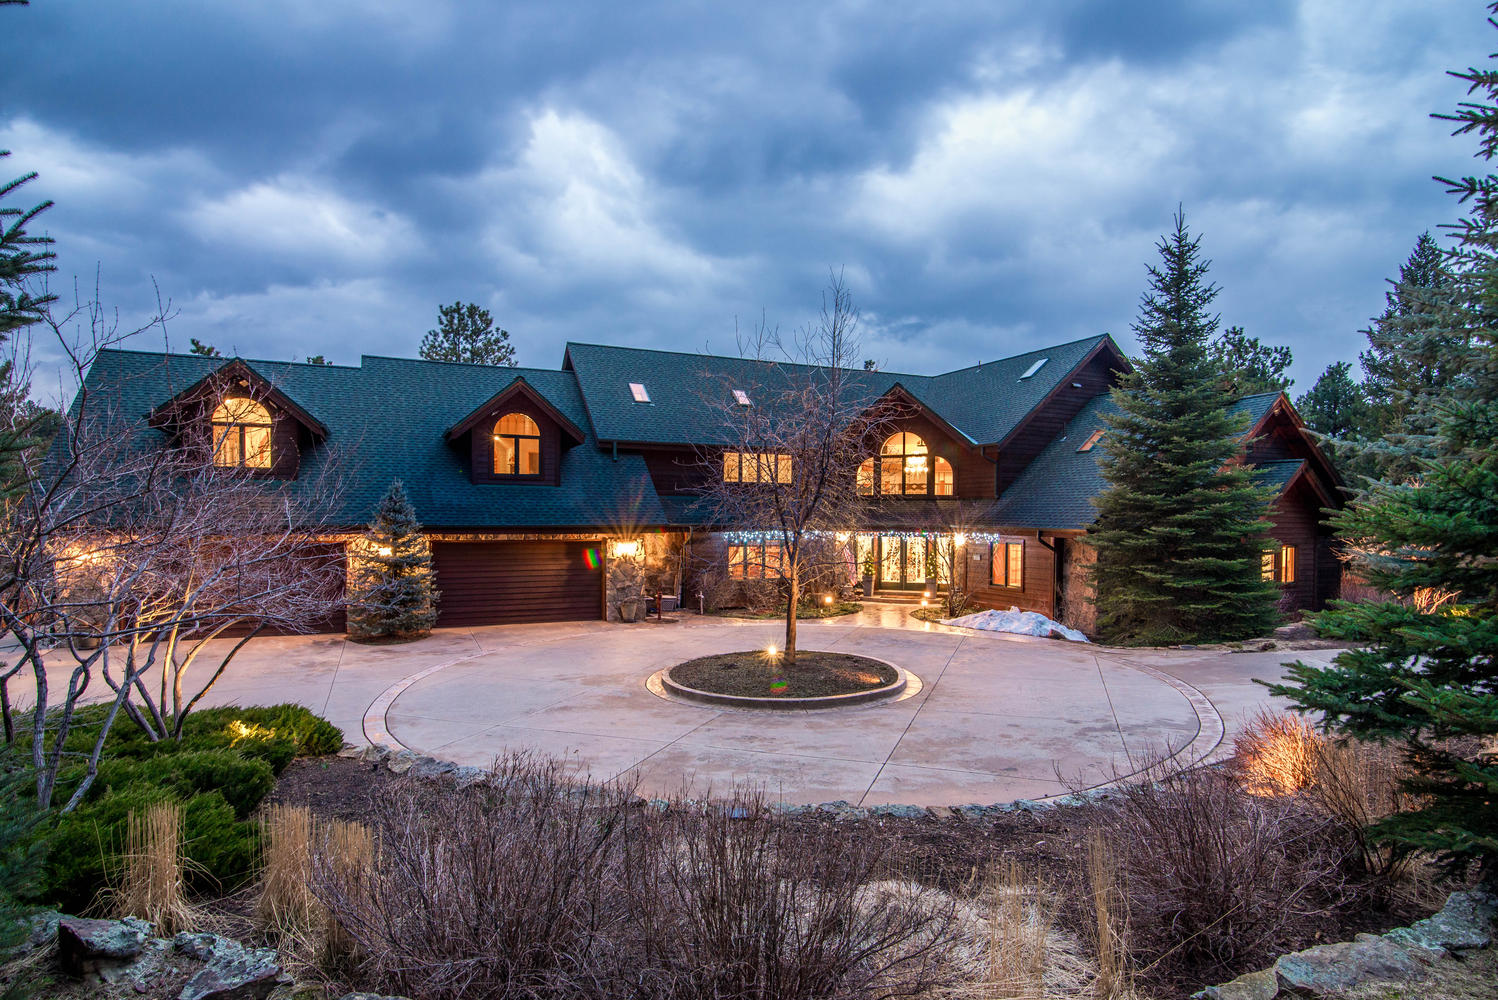 Casa Unifamiliar por un Venta en Majestic Estate Nestled on 42.42 Acres 28775 Cragmont Drive Evergreen, Colorado, 80439 Estados Unidos